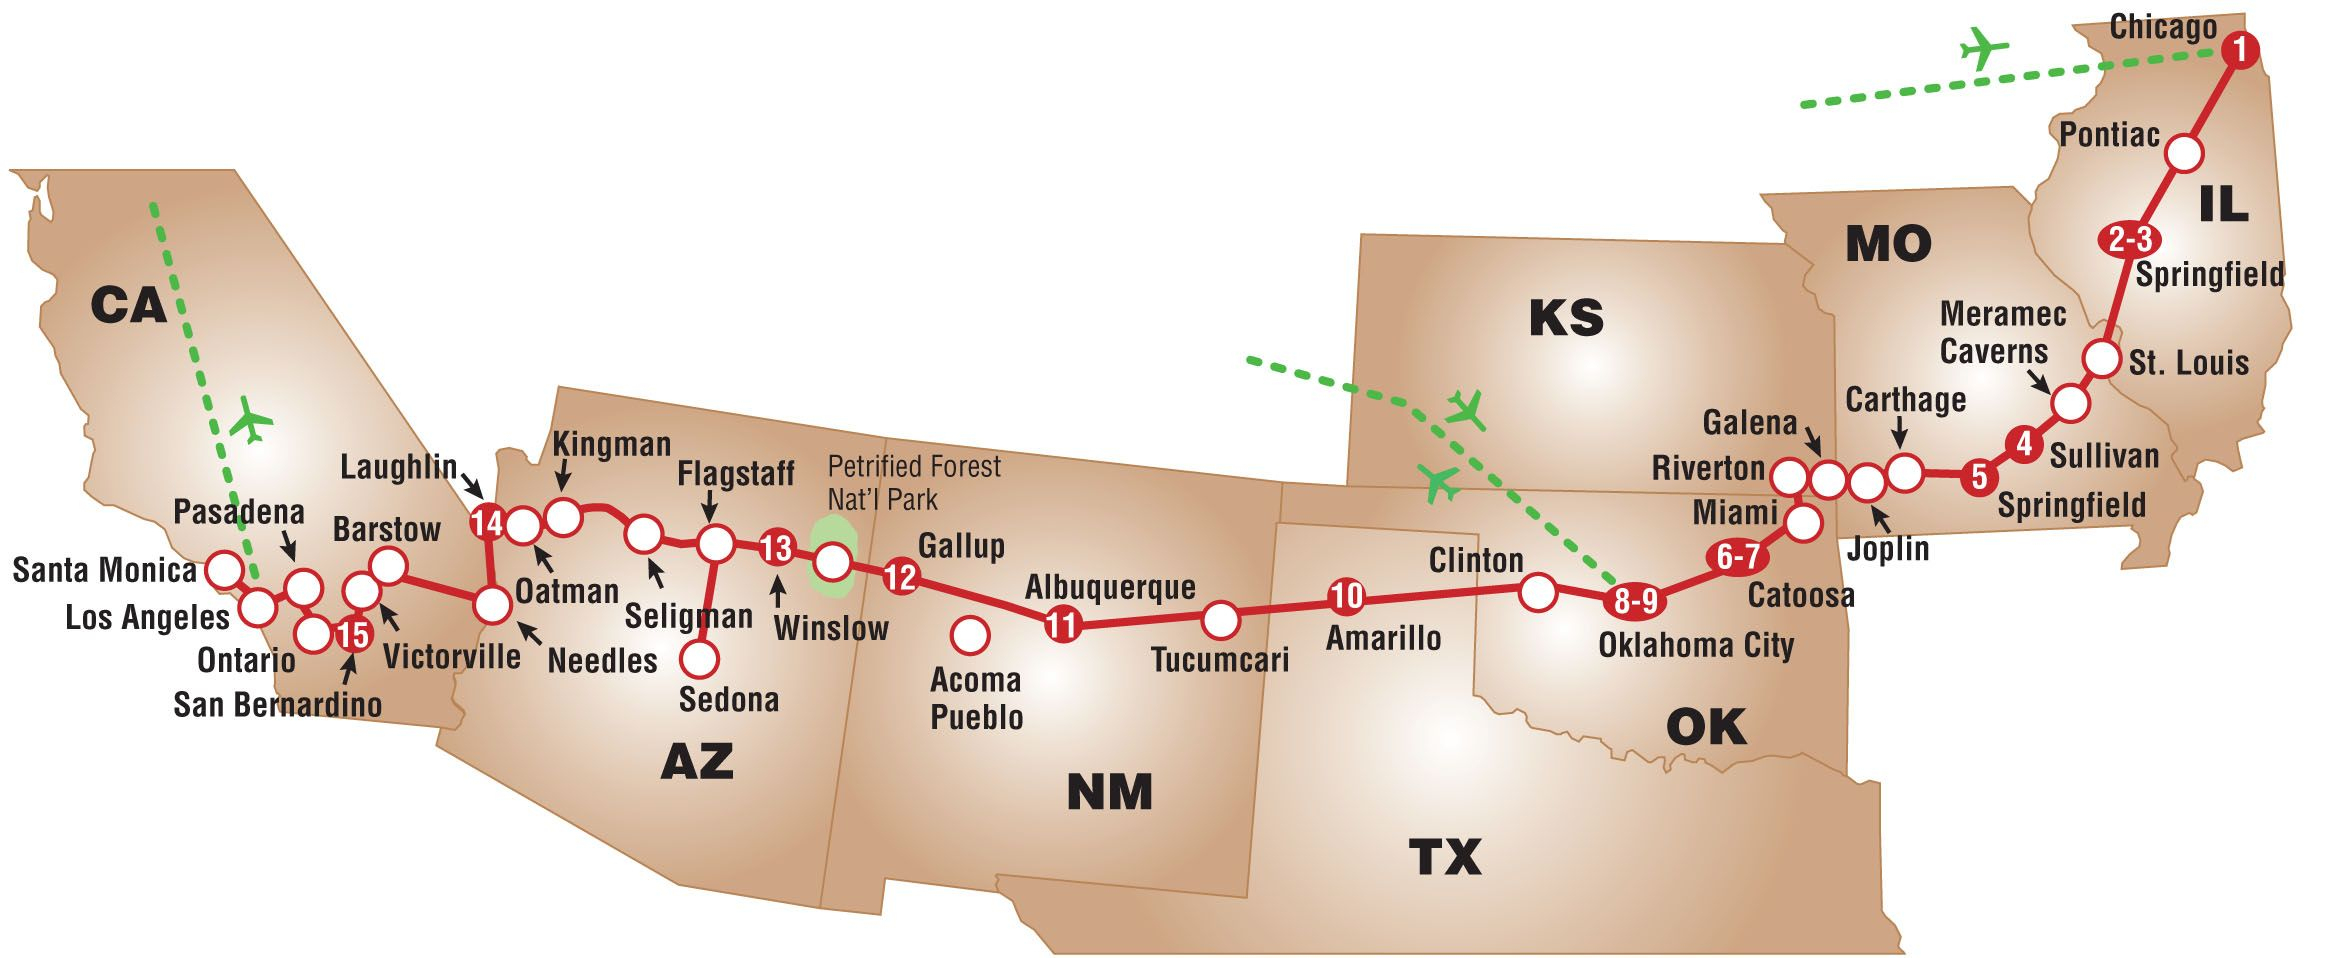 Entire Route 66 Map - Start To Finish | Route 66 | Pinterest | Route - Printable Route 66 Map